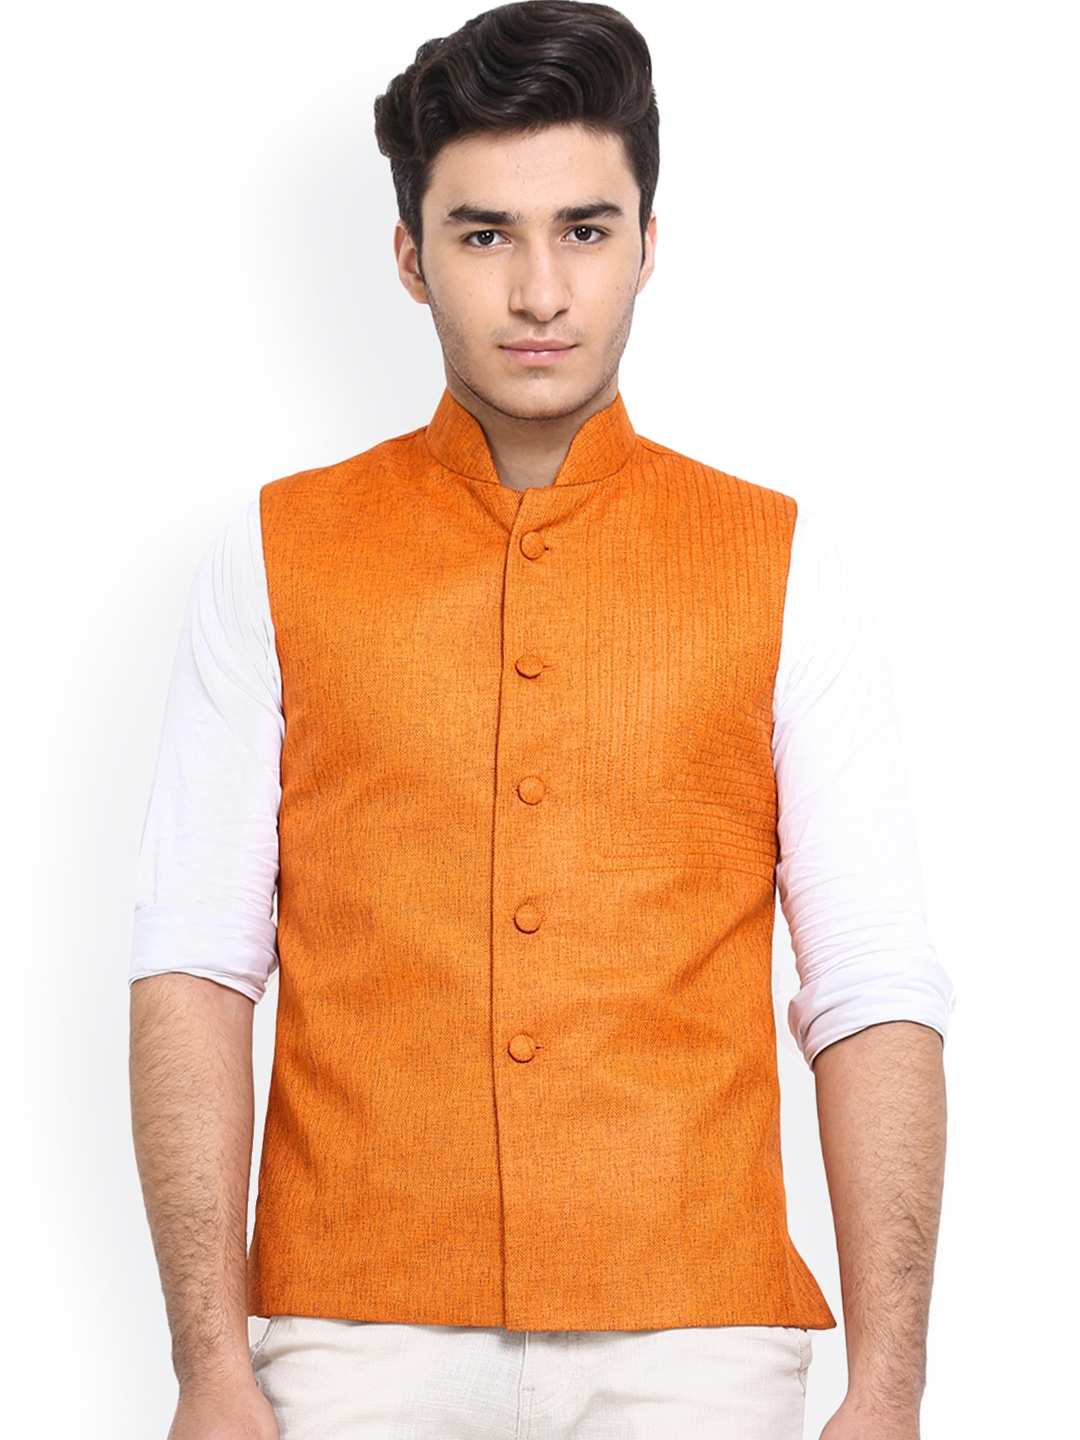 Shaftesbury London Orange Jute Nehru Jacket